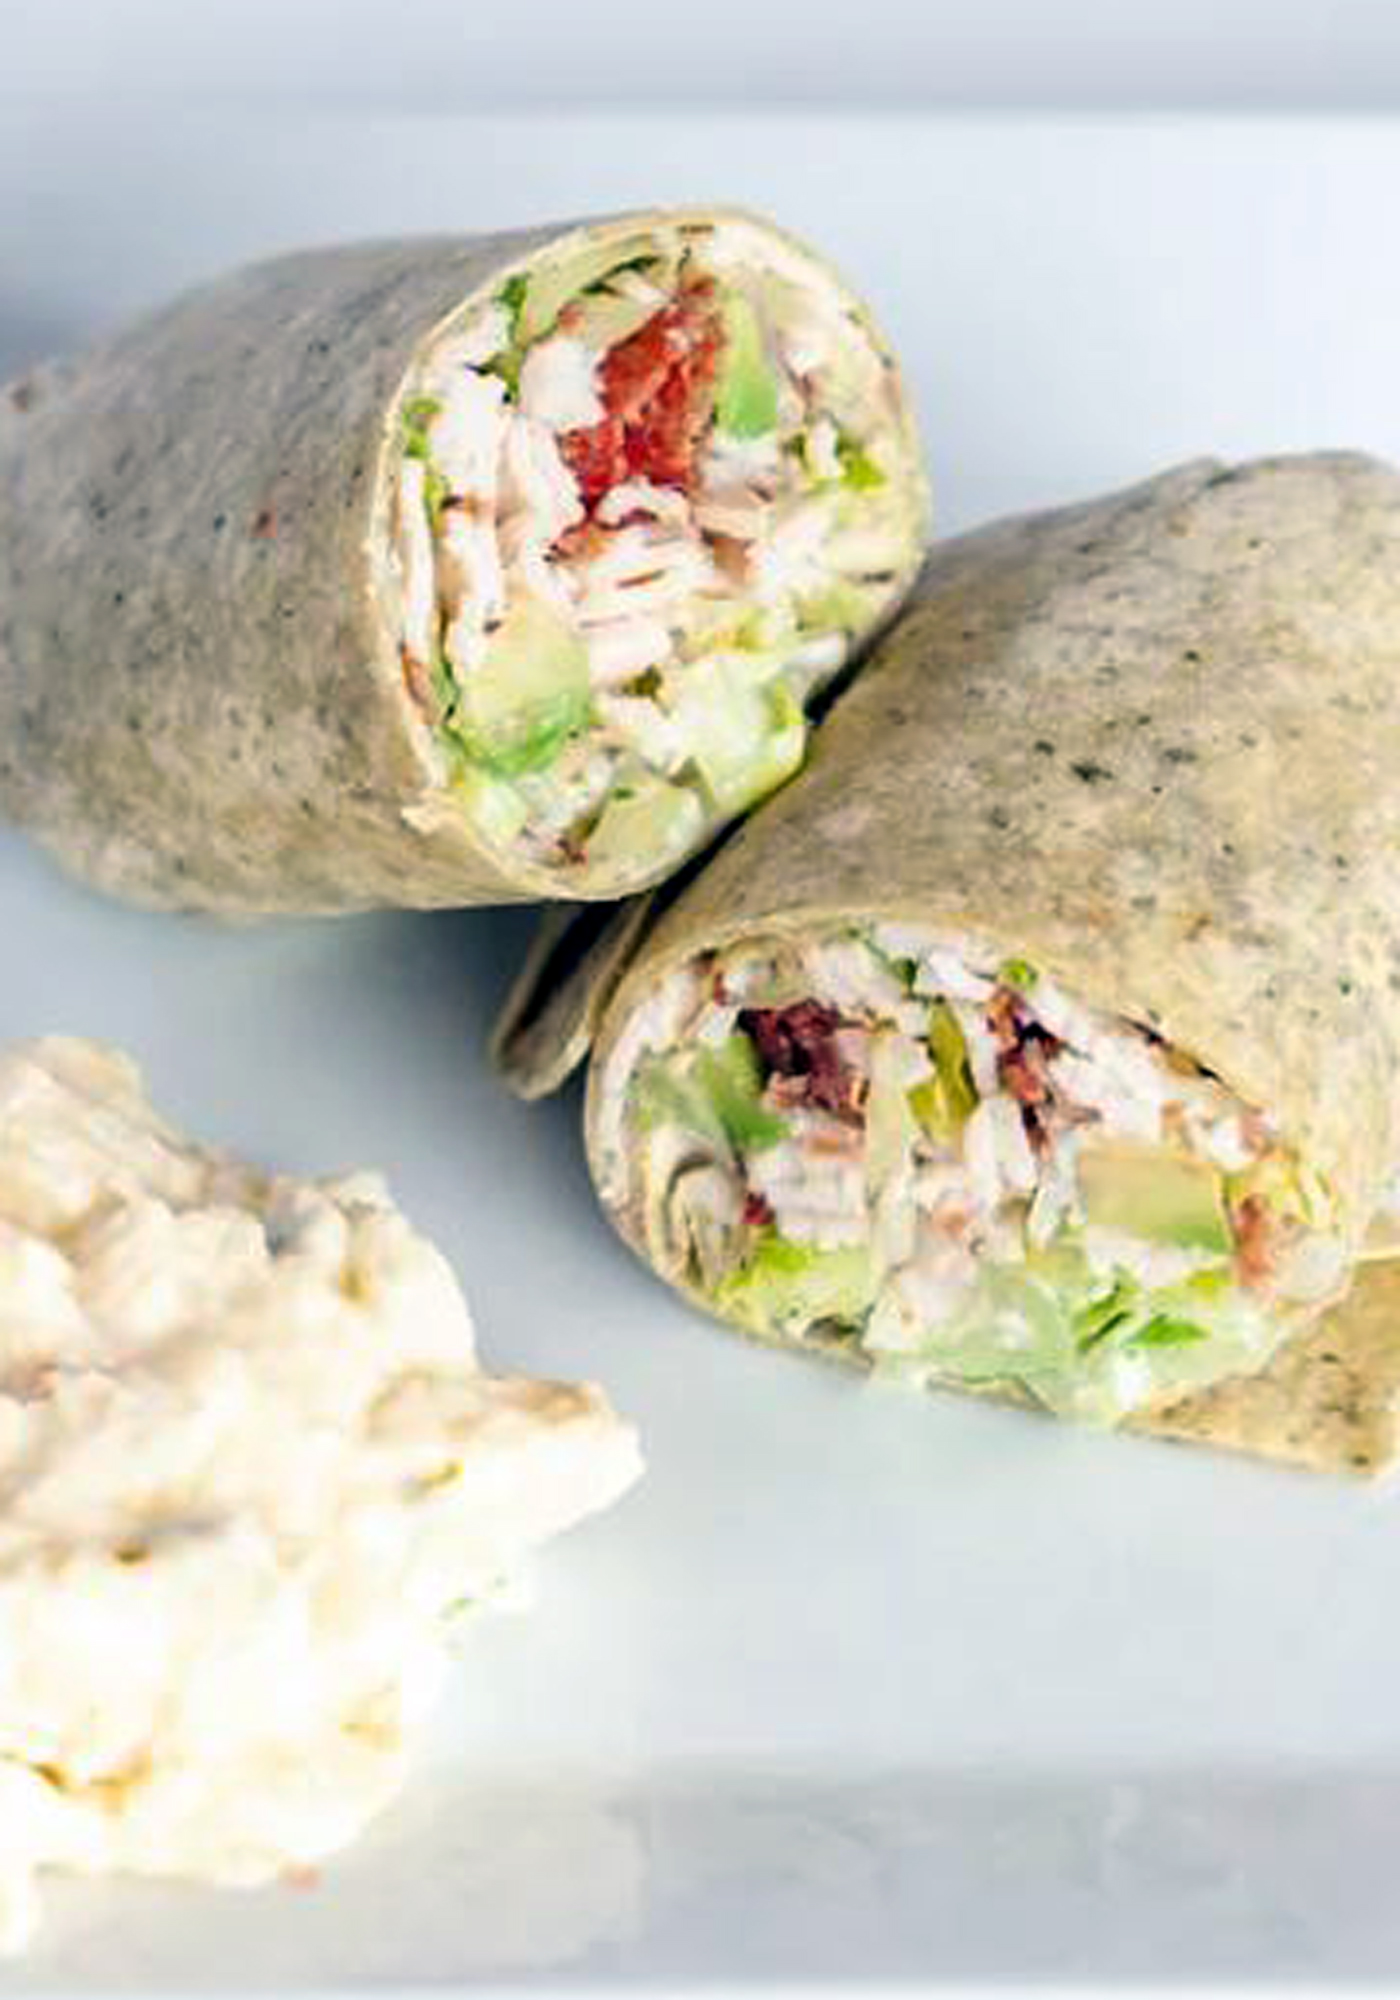 Ranch Turkey Club Wrap